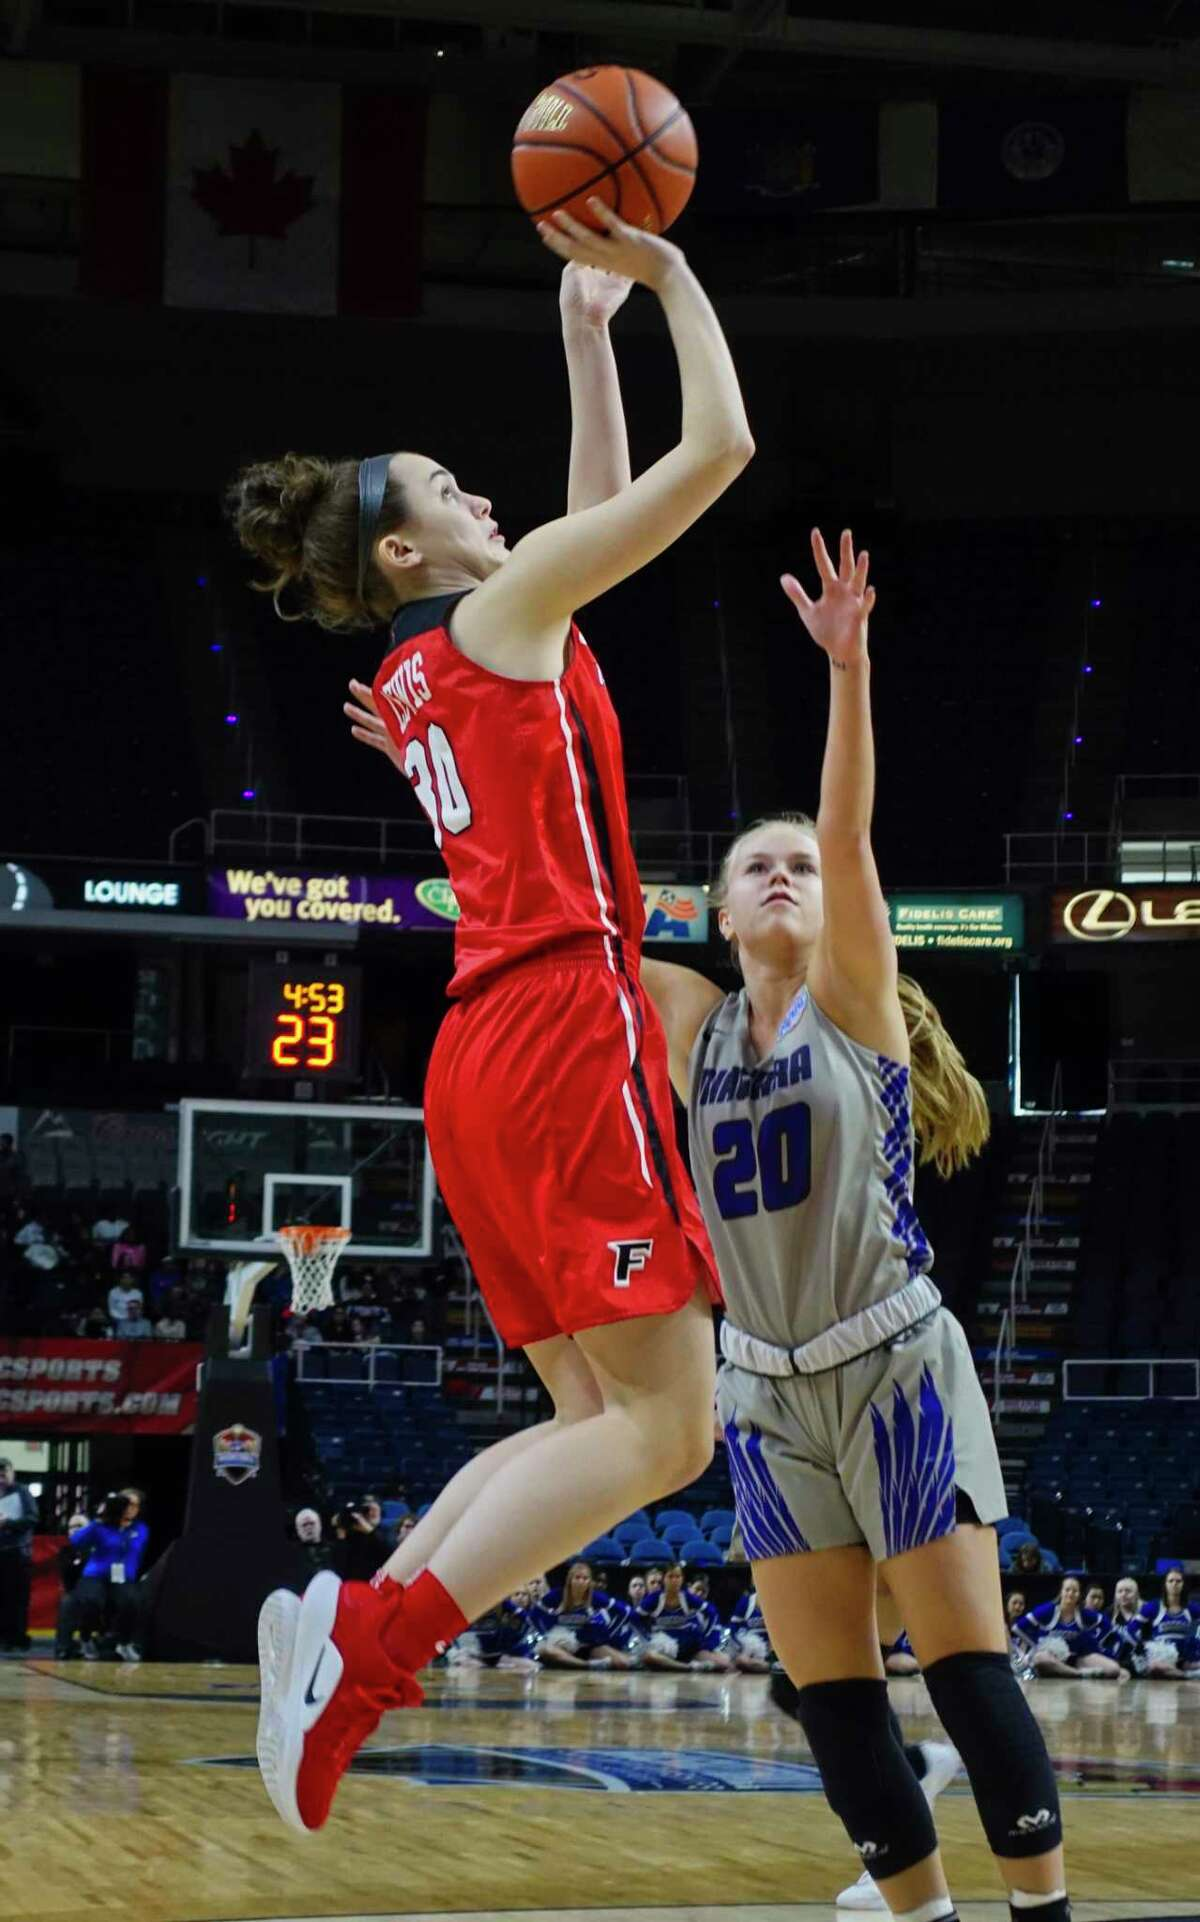 Fairfield's Sam Lewis puts up a shot over Niagara's Ally Haar during a MAAC Tournament game in 2019.